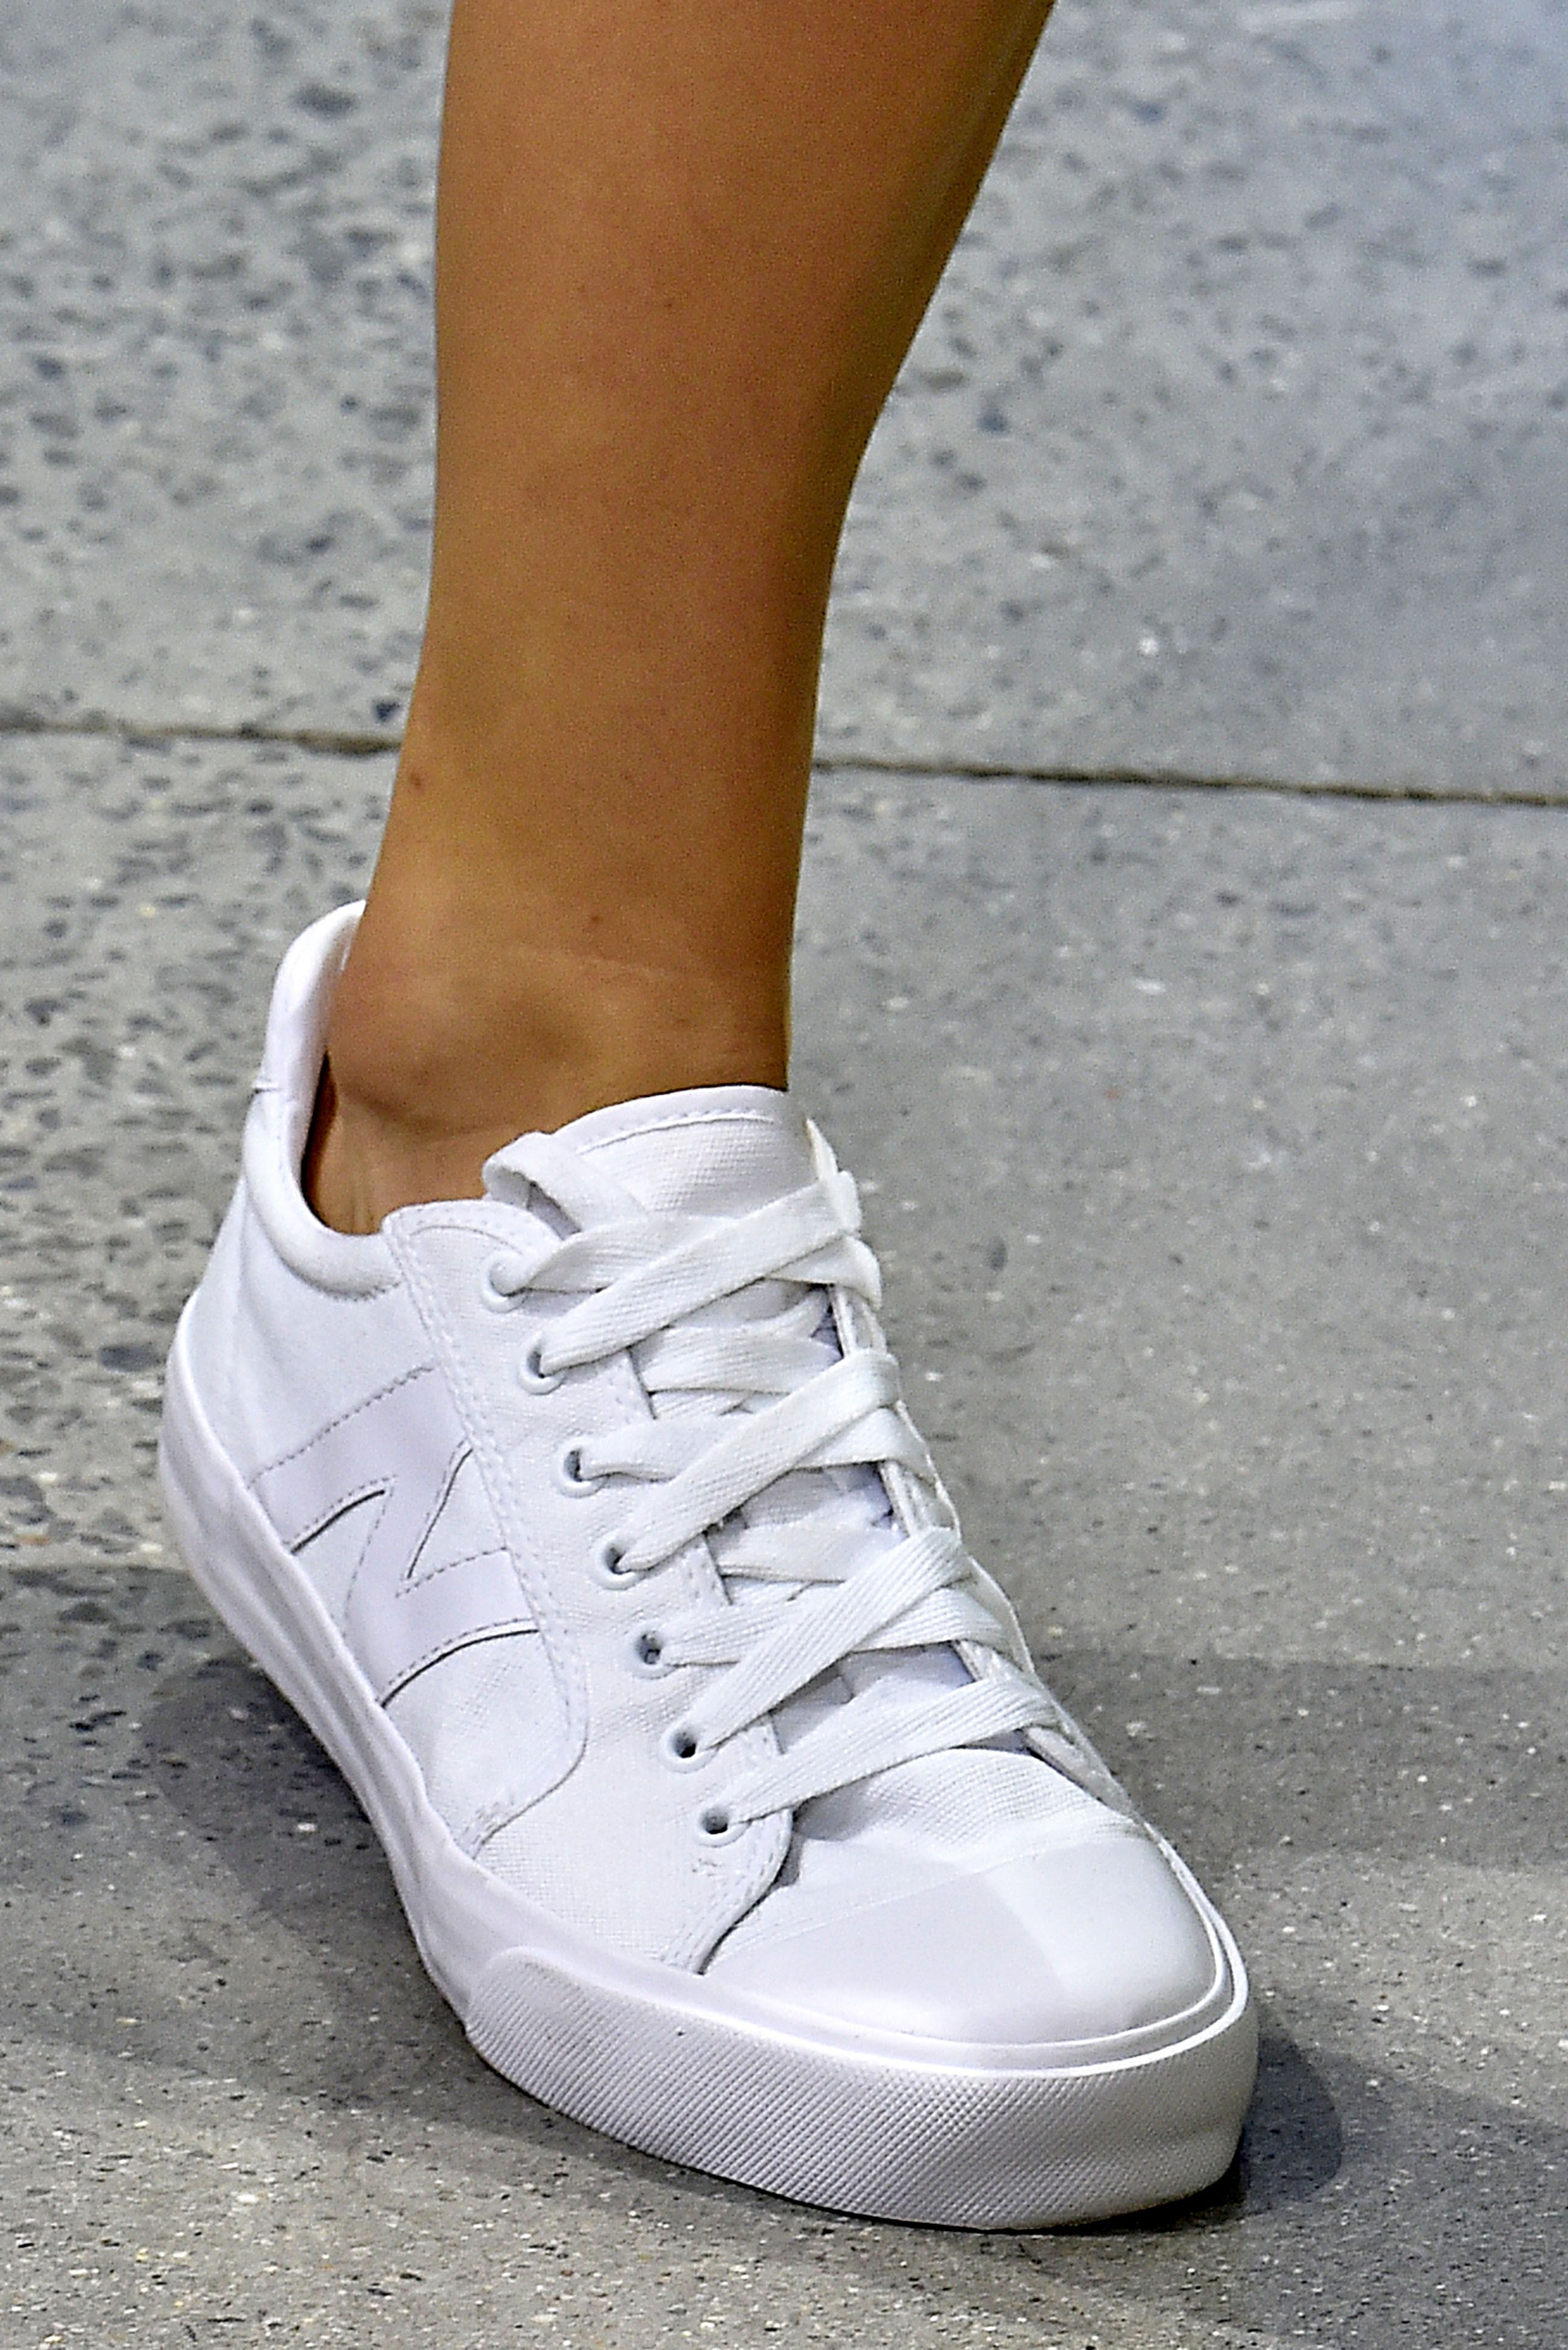 Fashion week The 5 Shoe Hottest Trends for Spring for girls